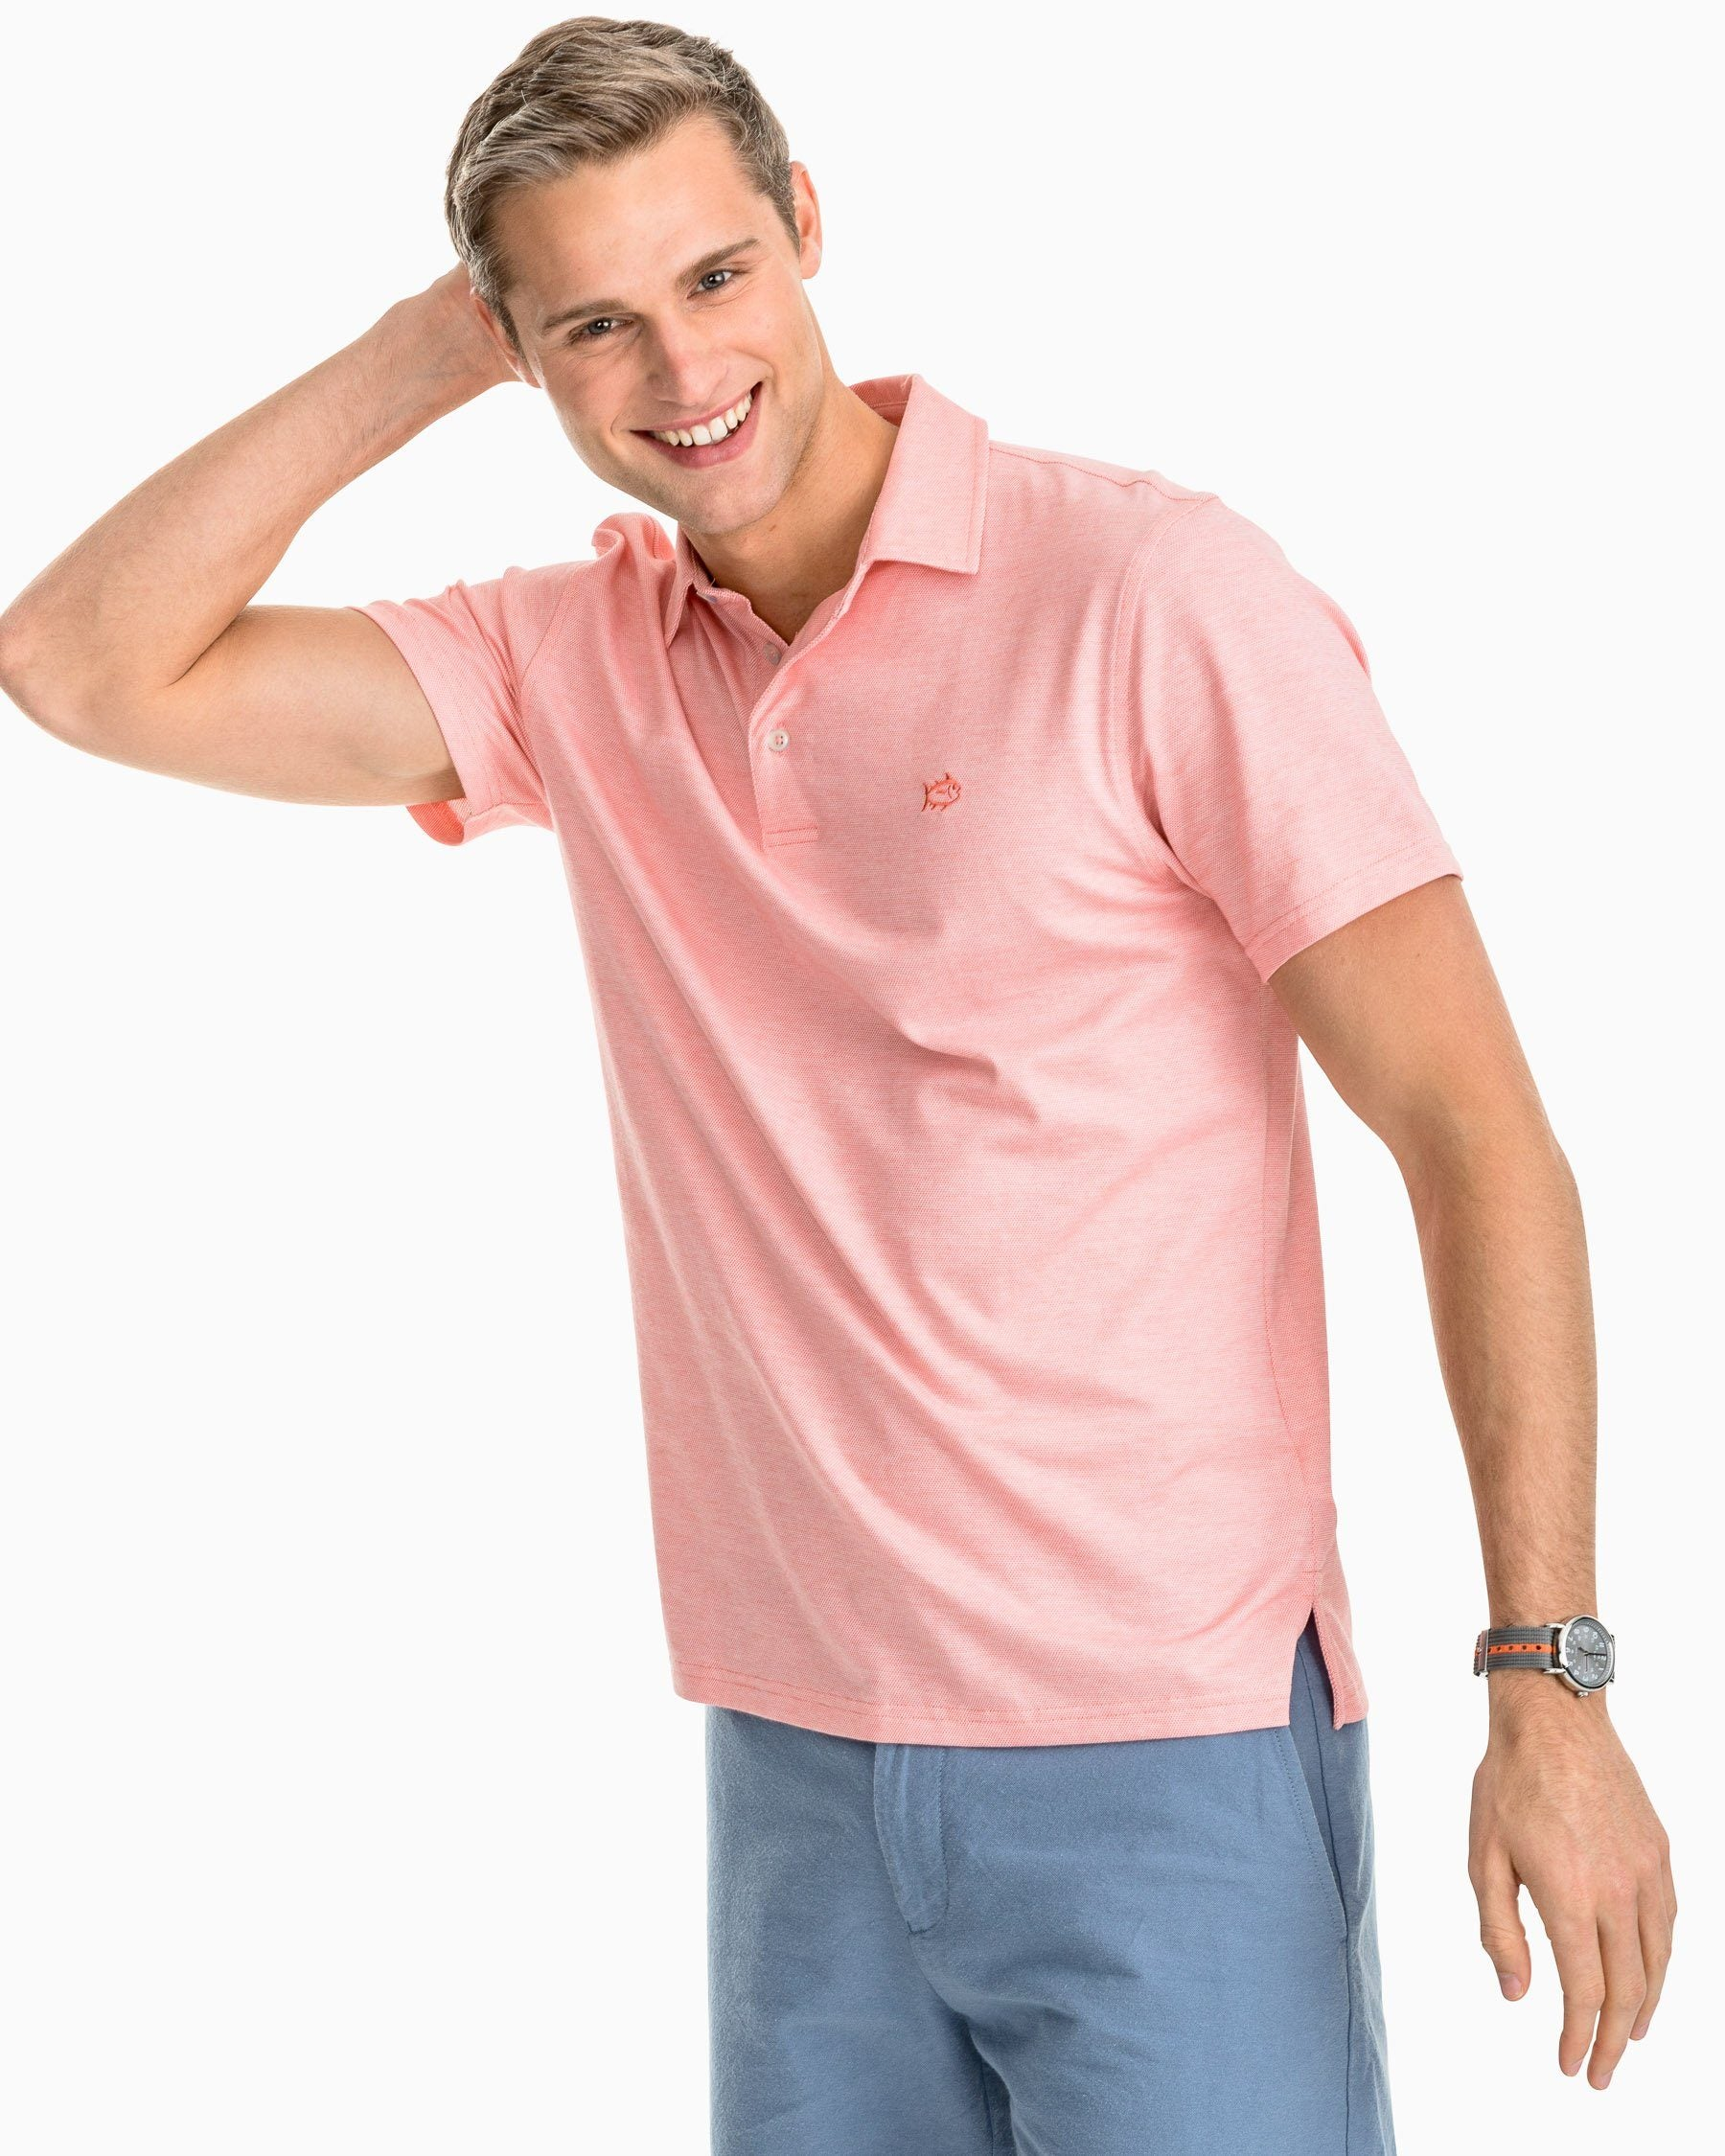 064be1a8a Mens Slim Fit Polo Shirts – Jacquard Textured